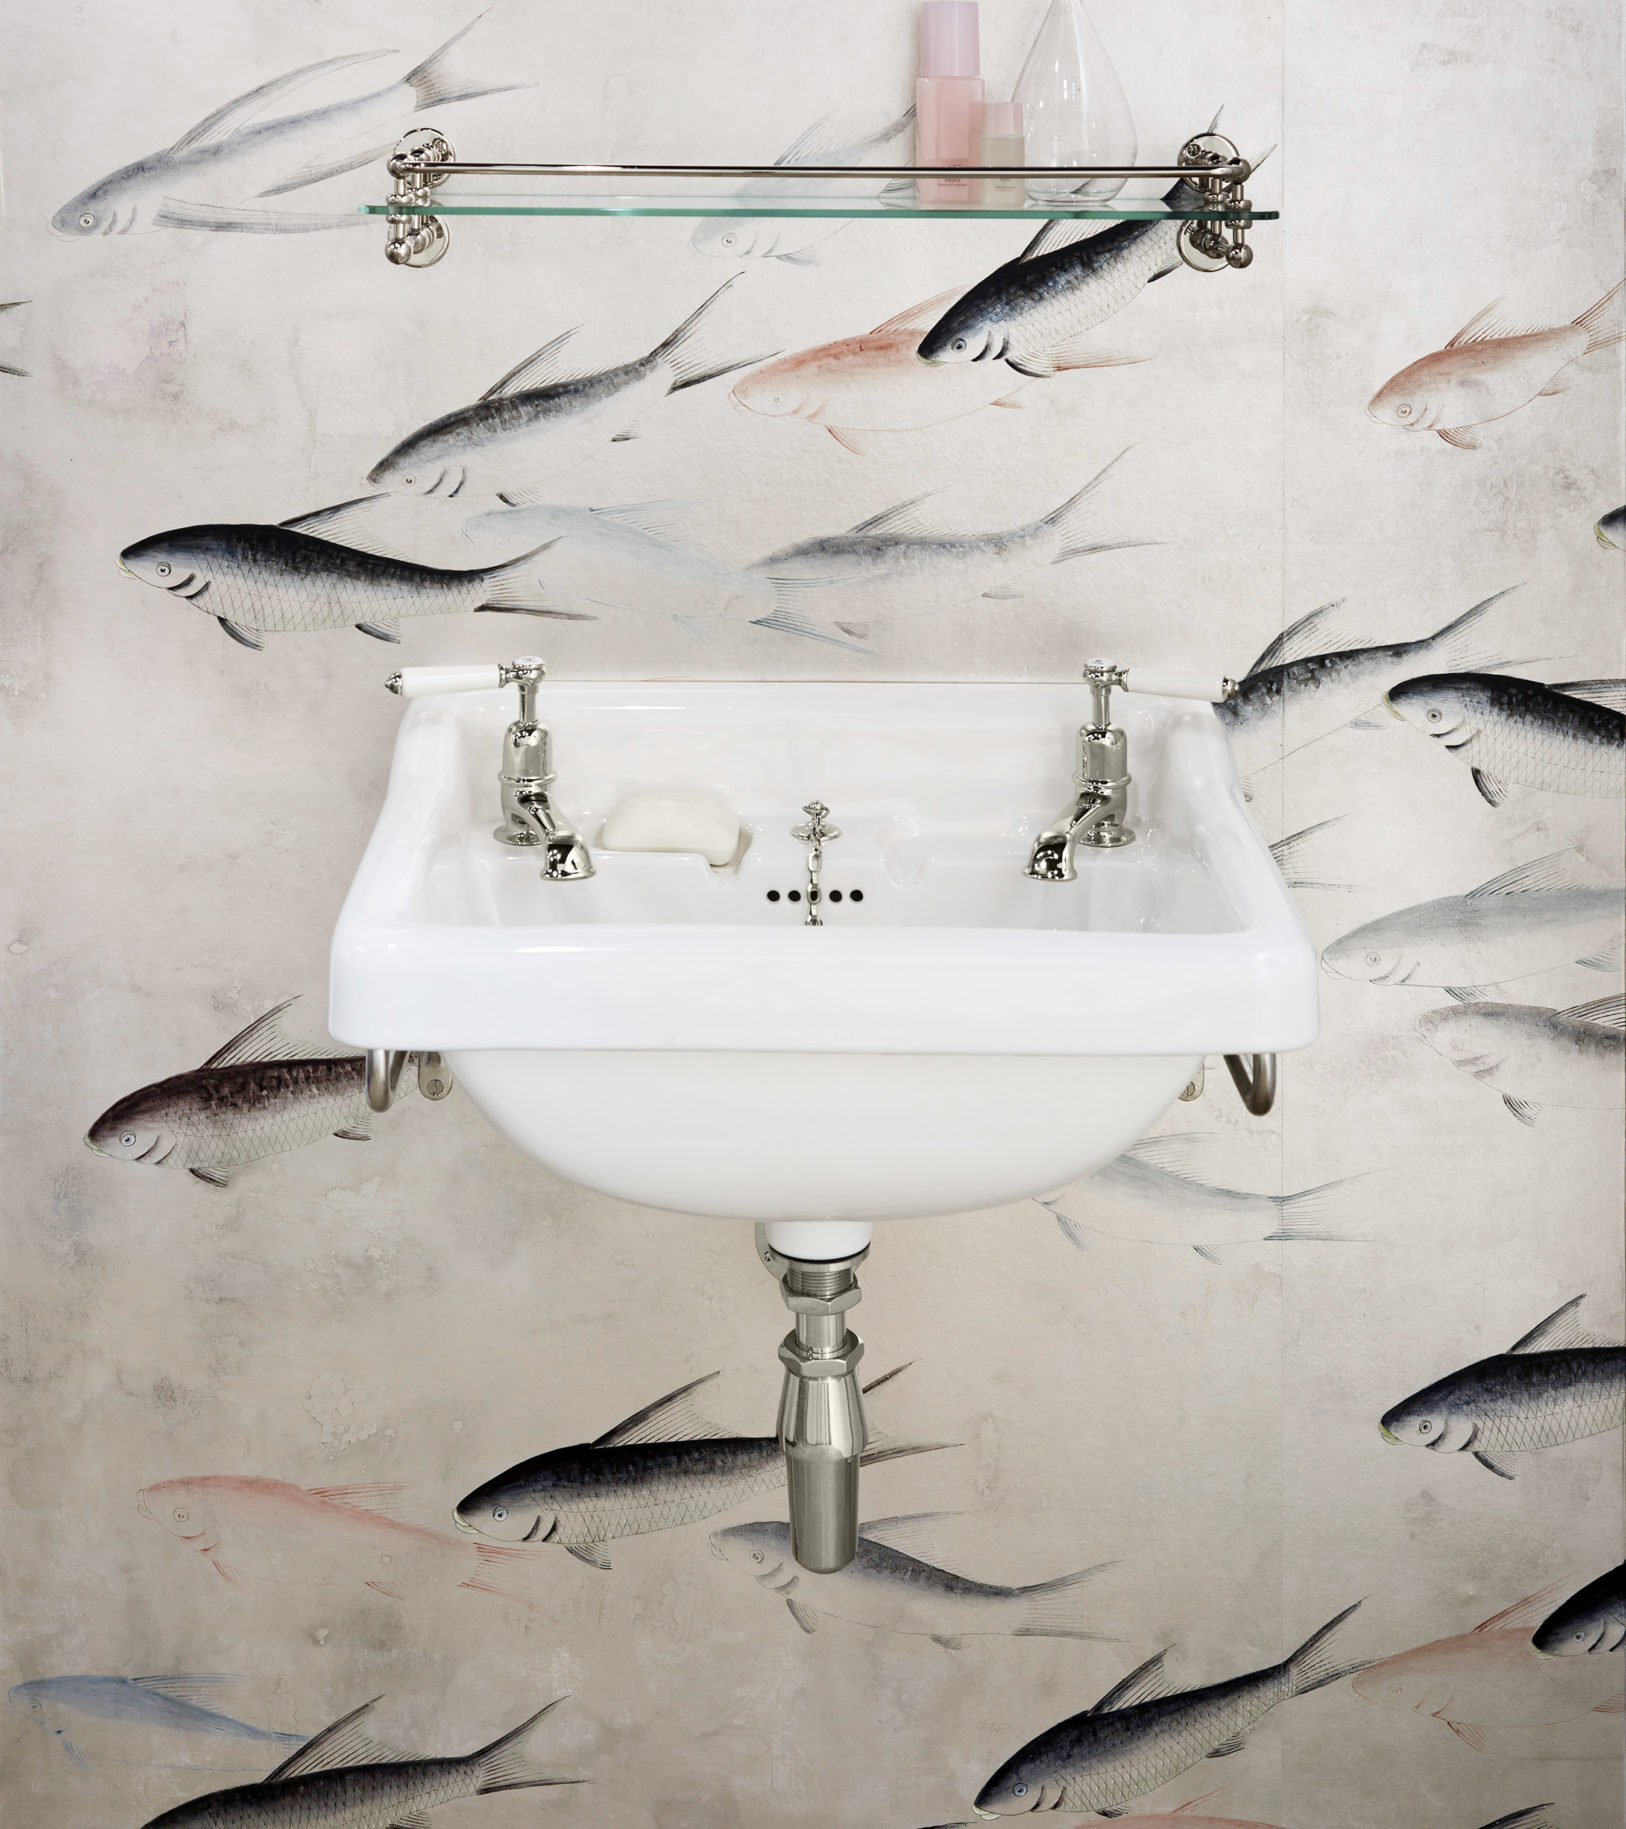 The Syre china wall mounted vanity basin in nickel finish